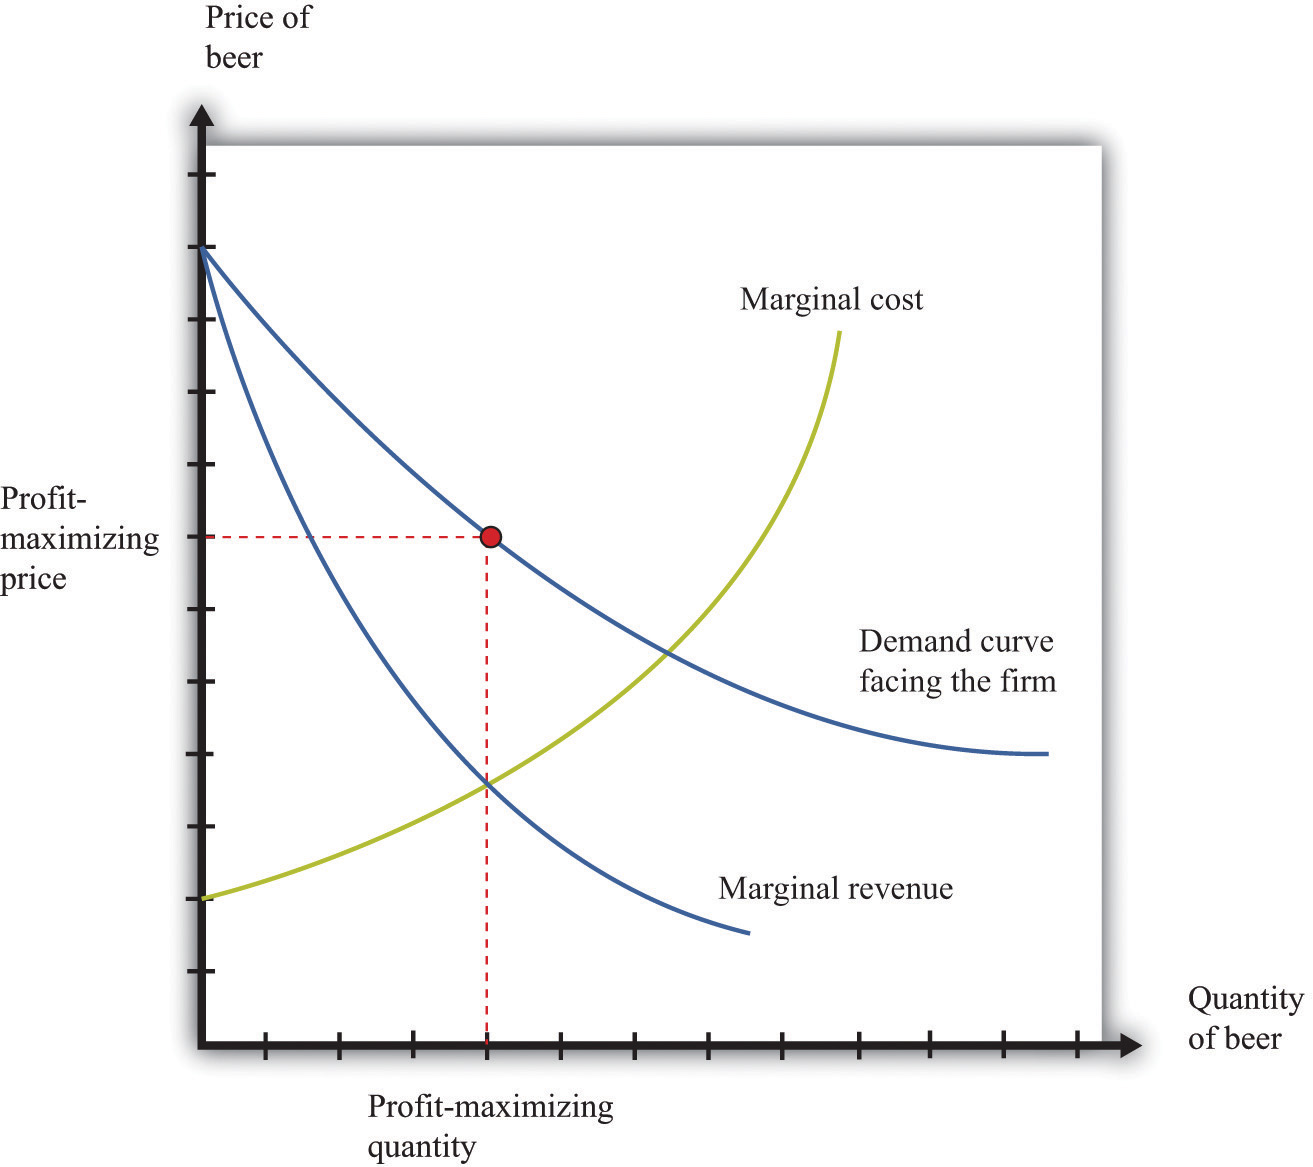 hight resolution of a monopolist produces a quantity such that marginal revenue equals marginal cost the price is determined by the demand curve